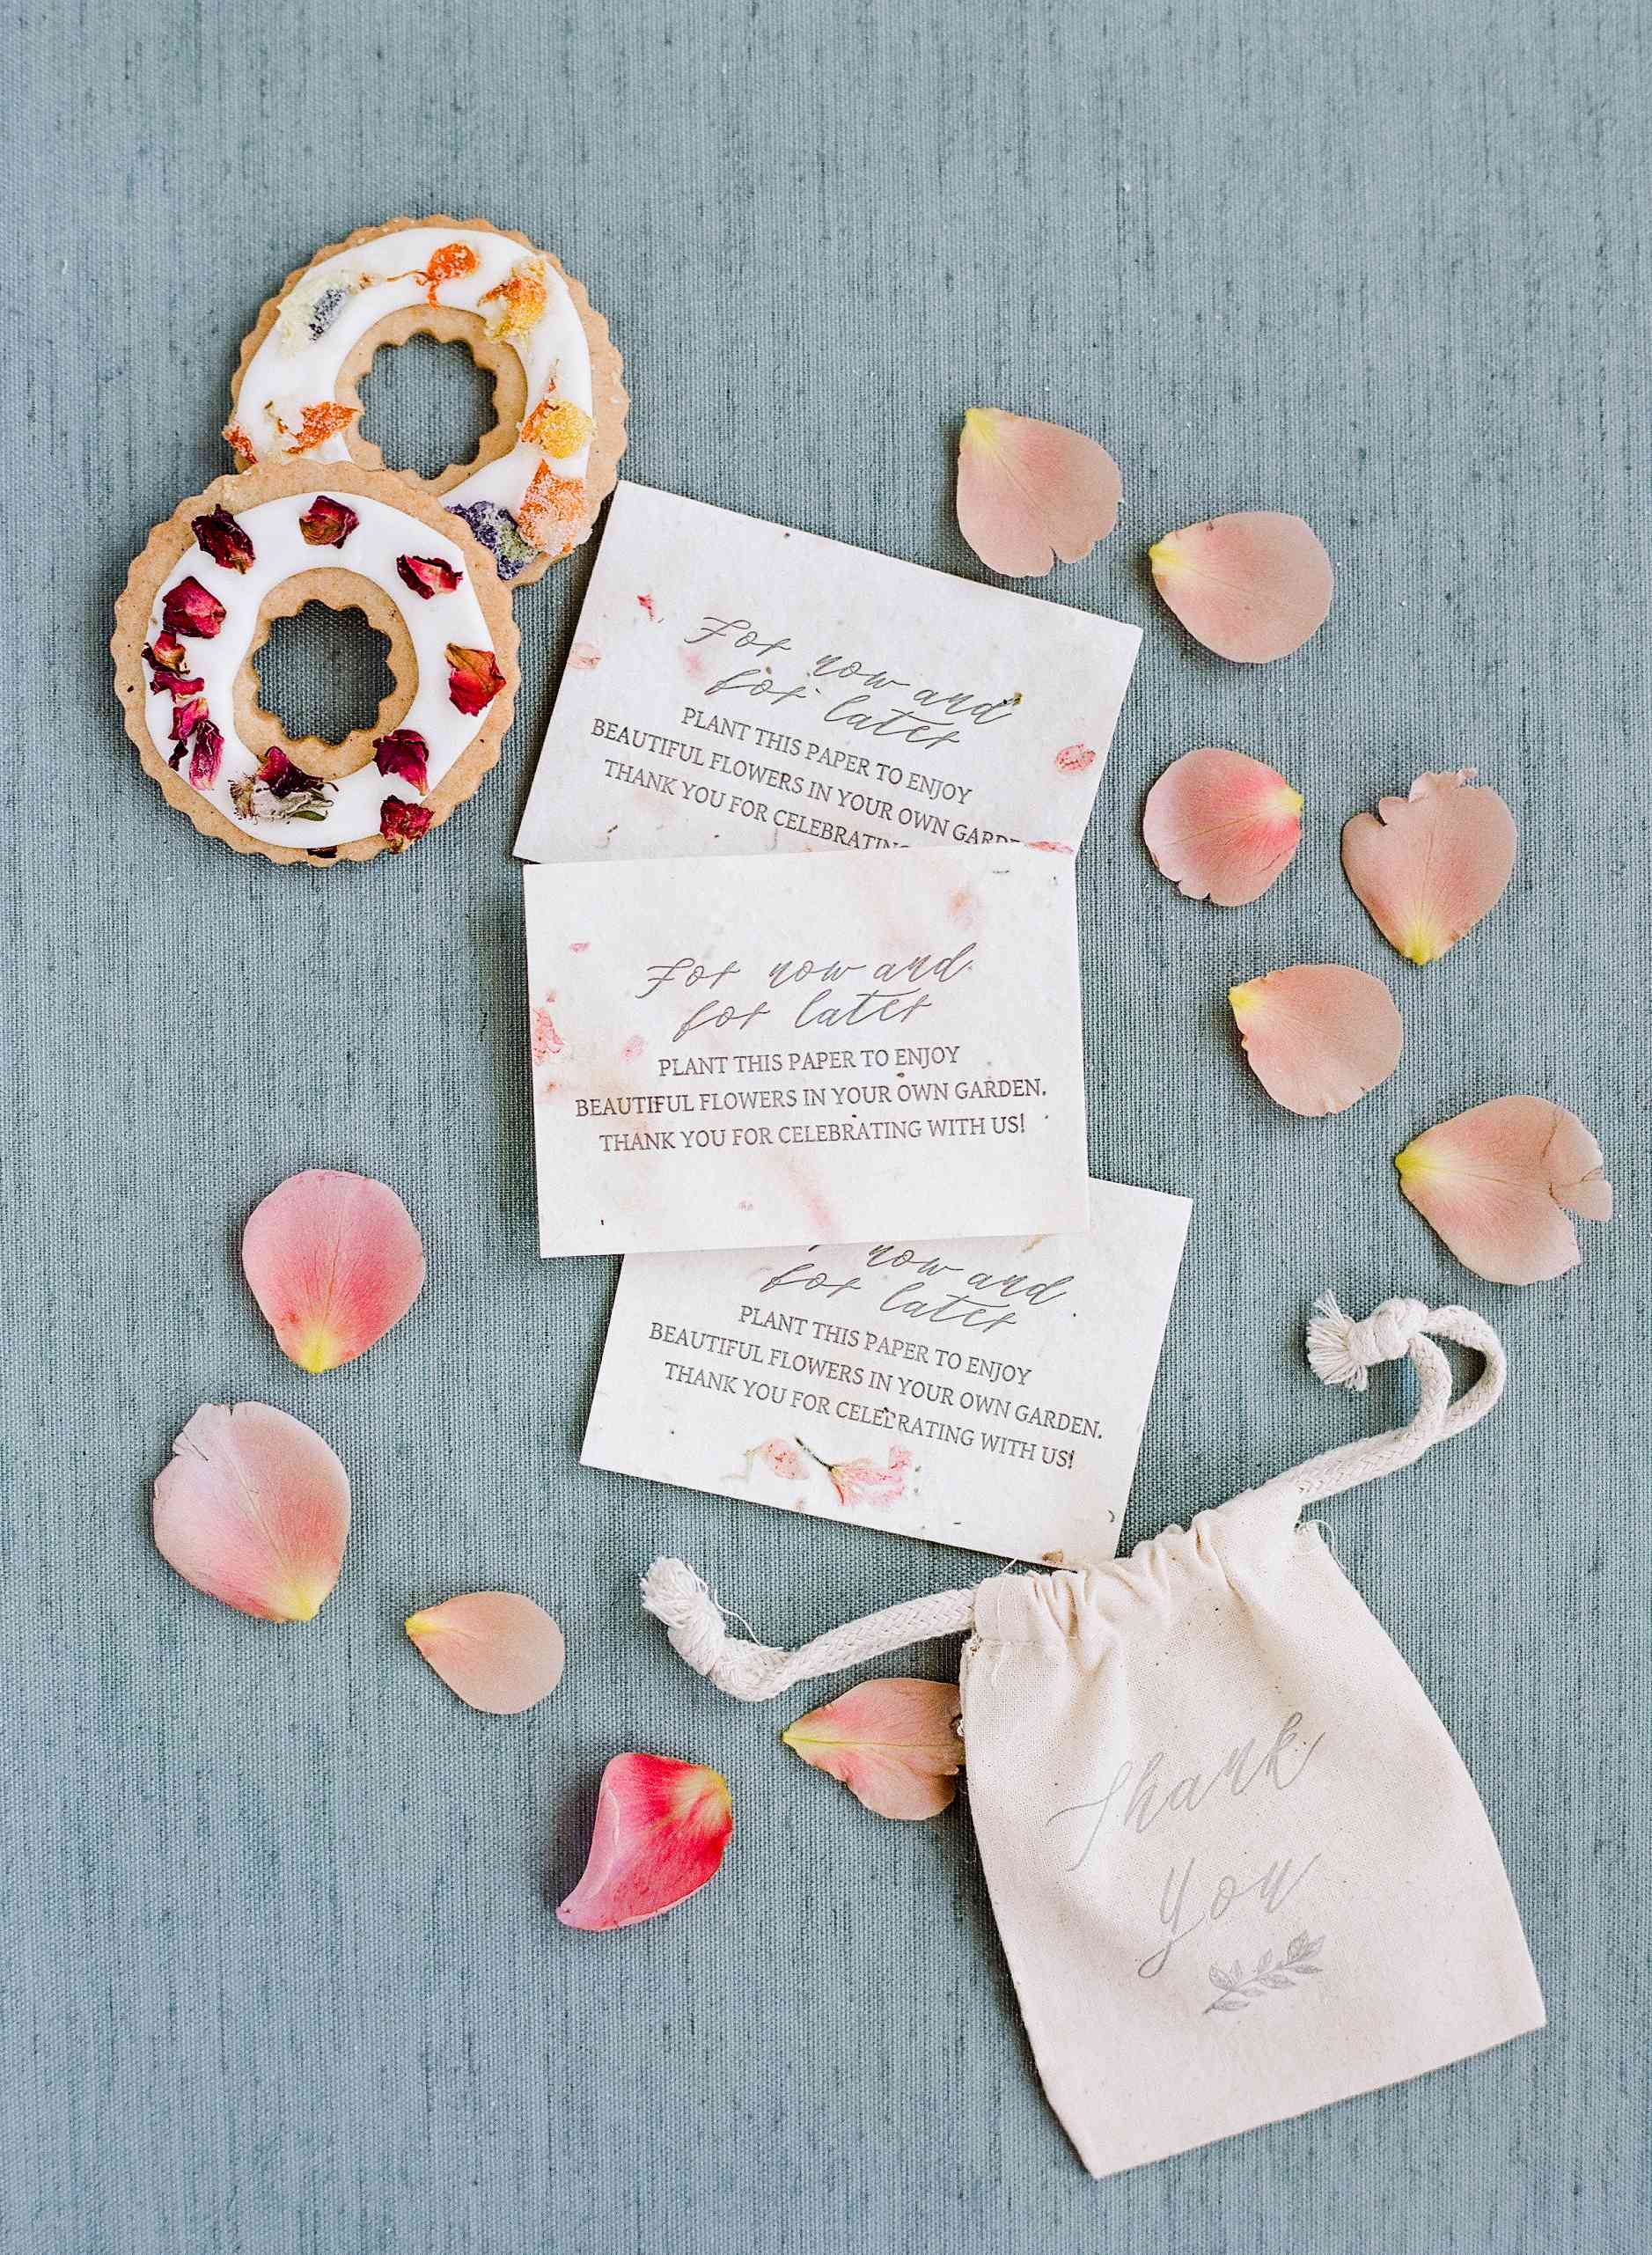 Seed paper wedding favors and edible flower round cookies